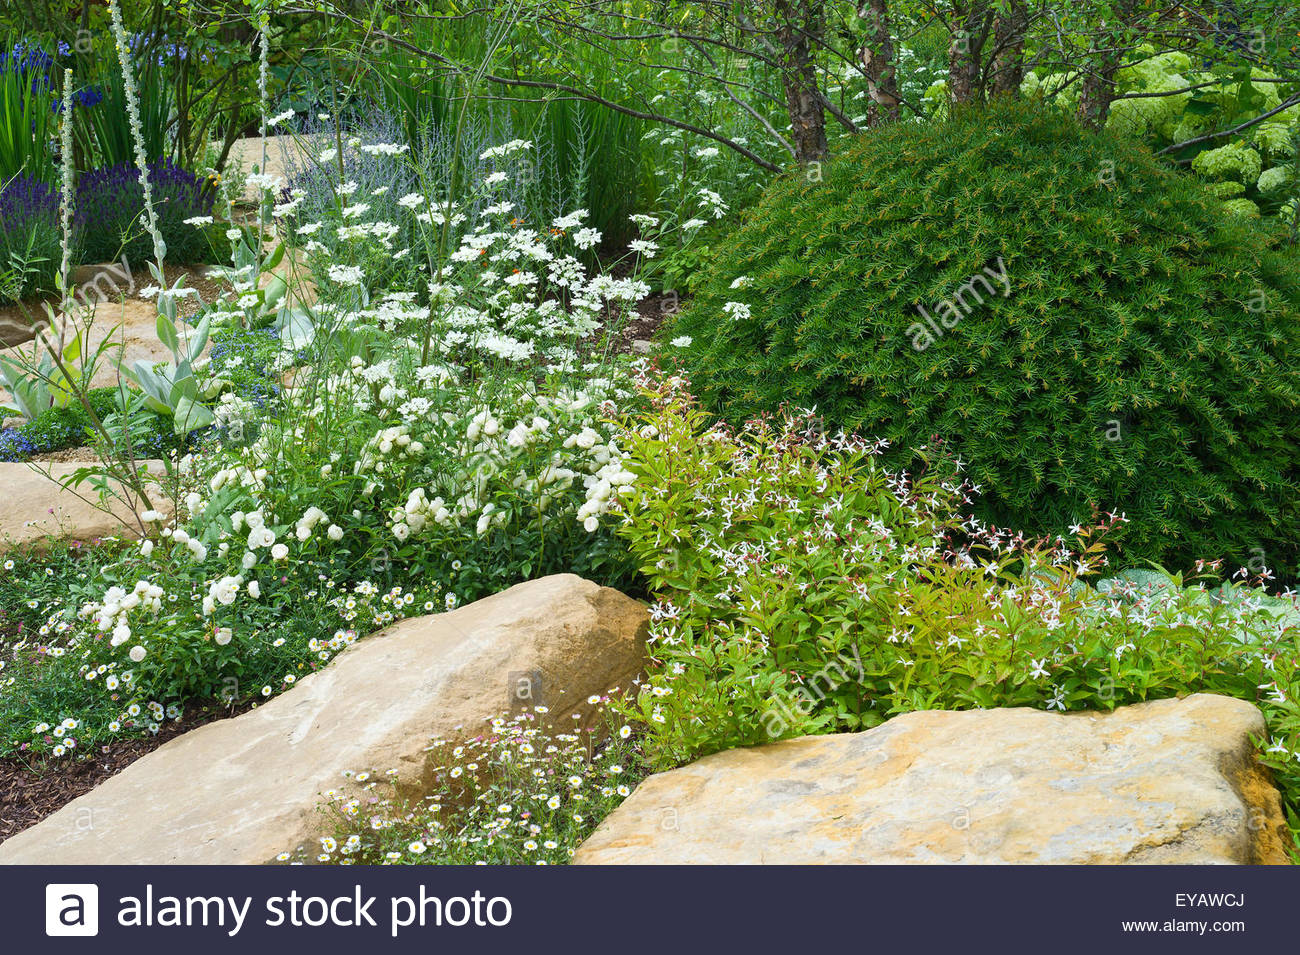 A garden with large stones interplanted with white for Large white garden rocks